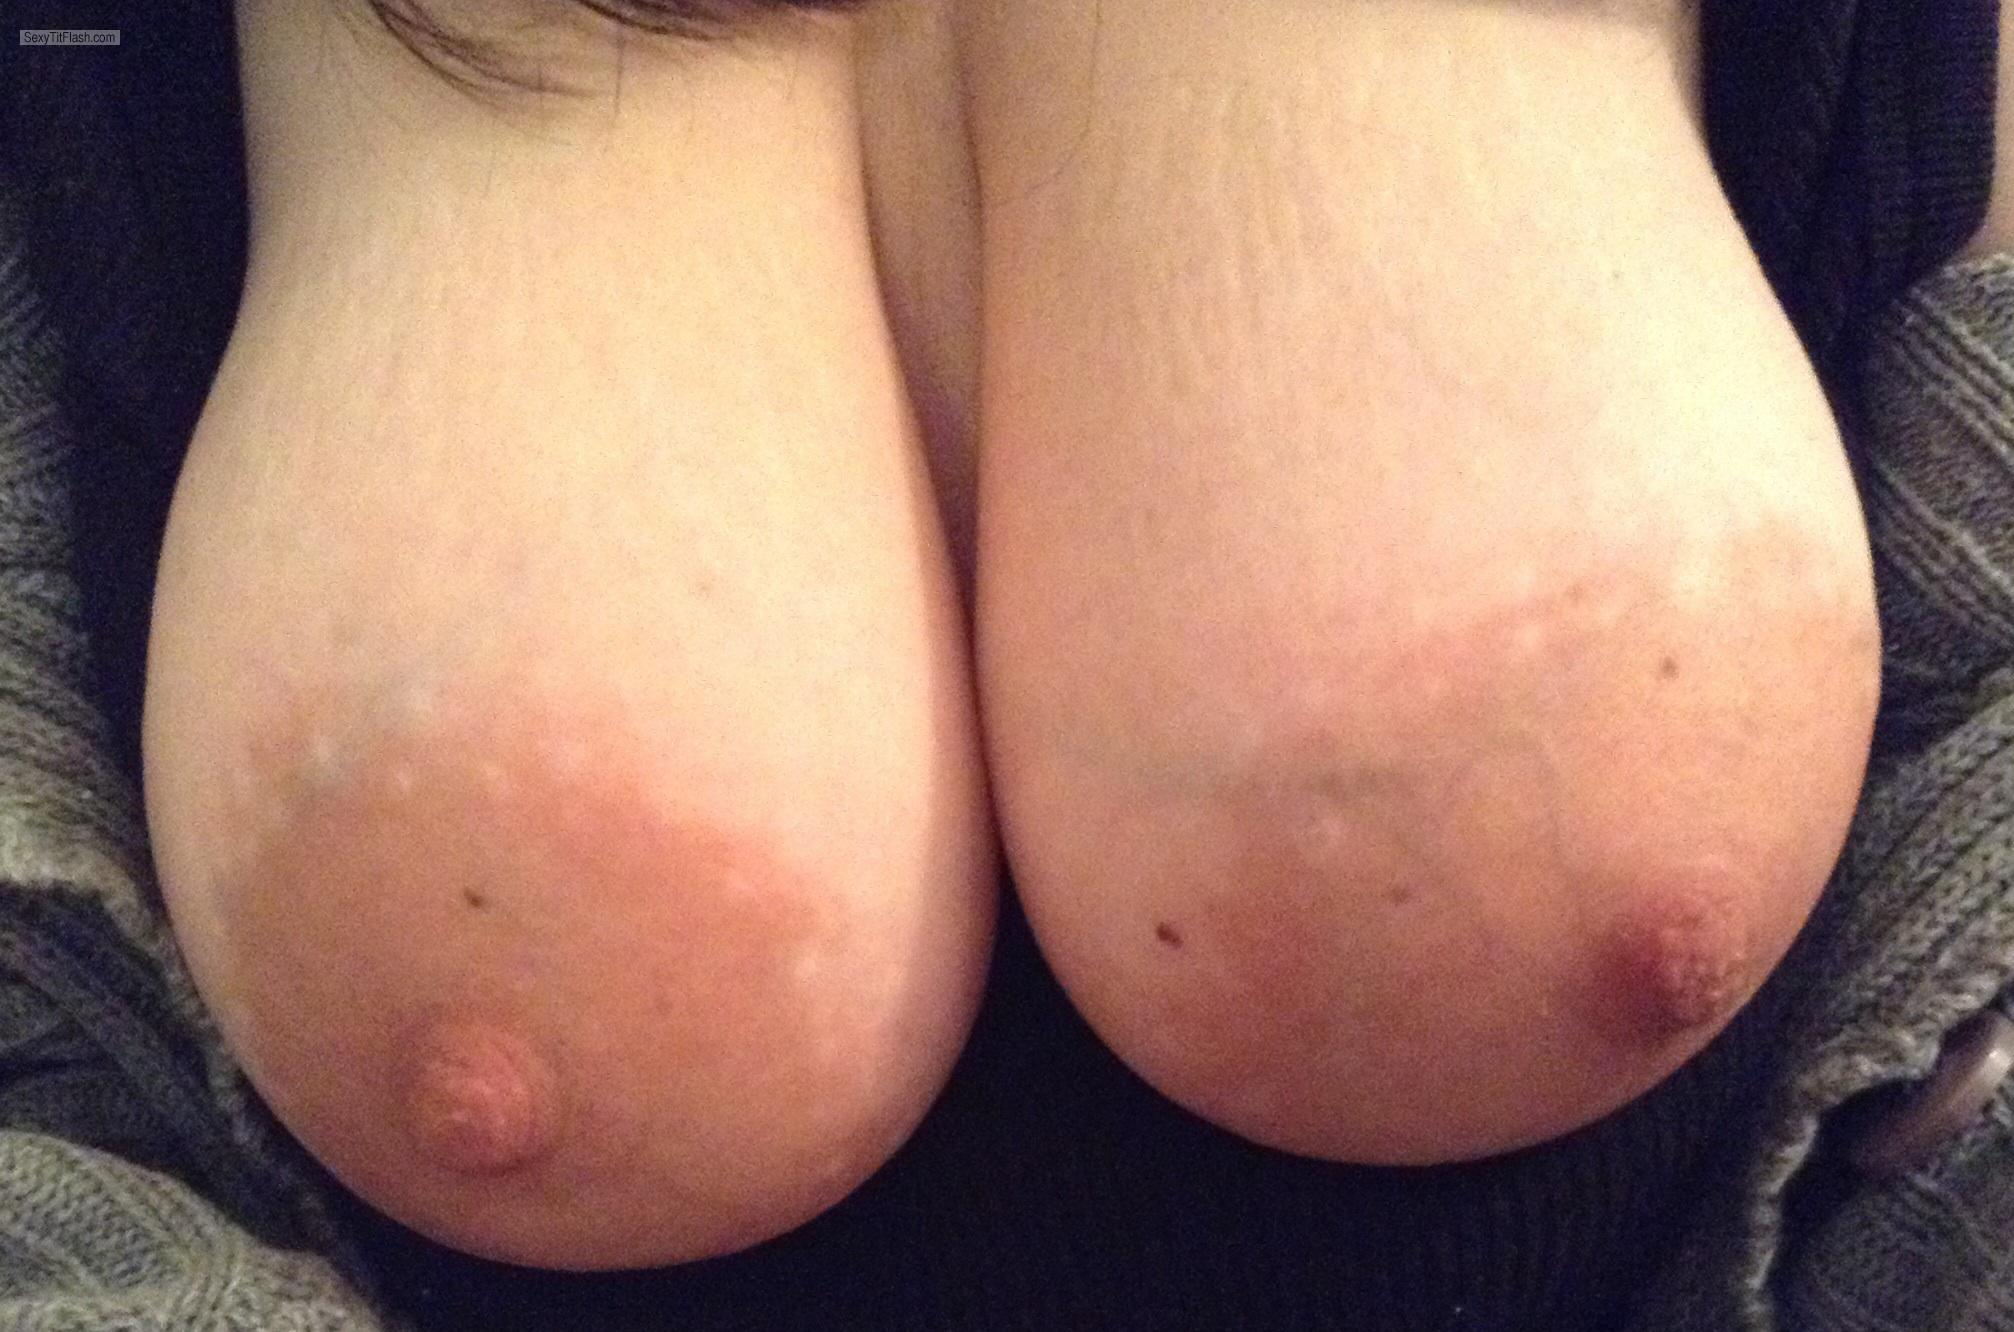 My Big Tits Selfie by Tittymom